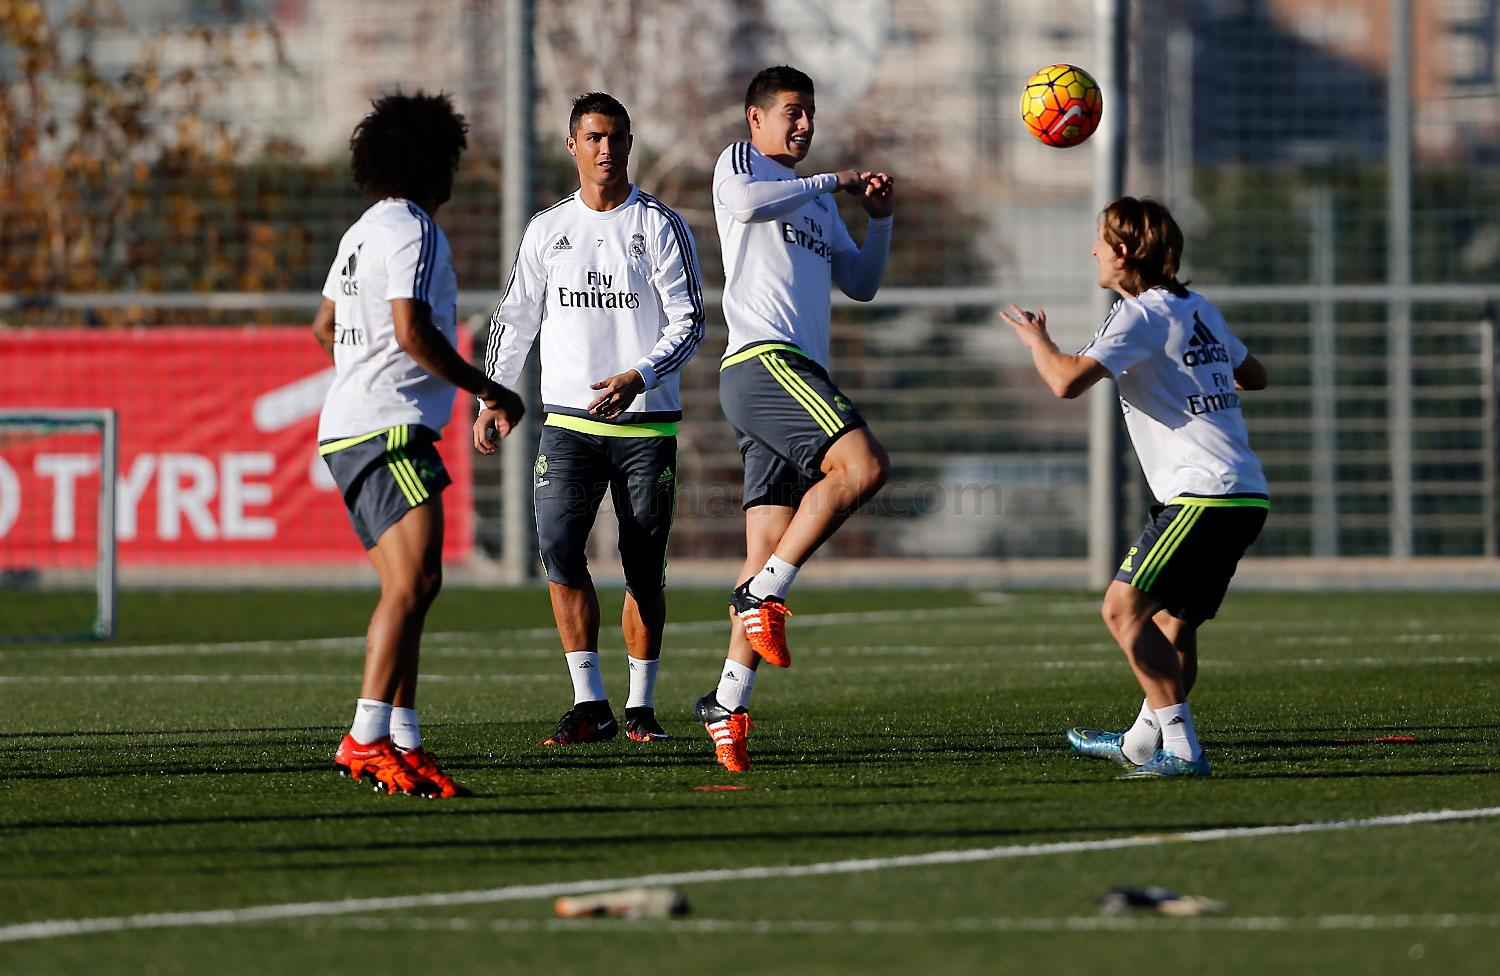 Real Madrid - Entrenamiento del Real Madrid - 19-11-2015